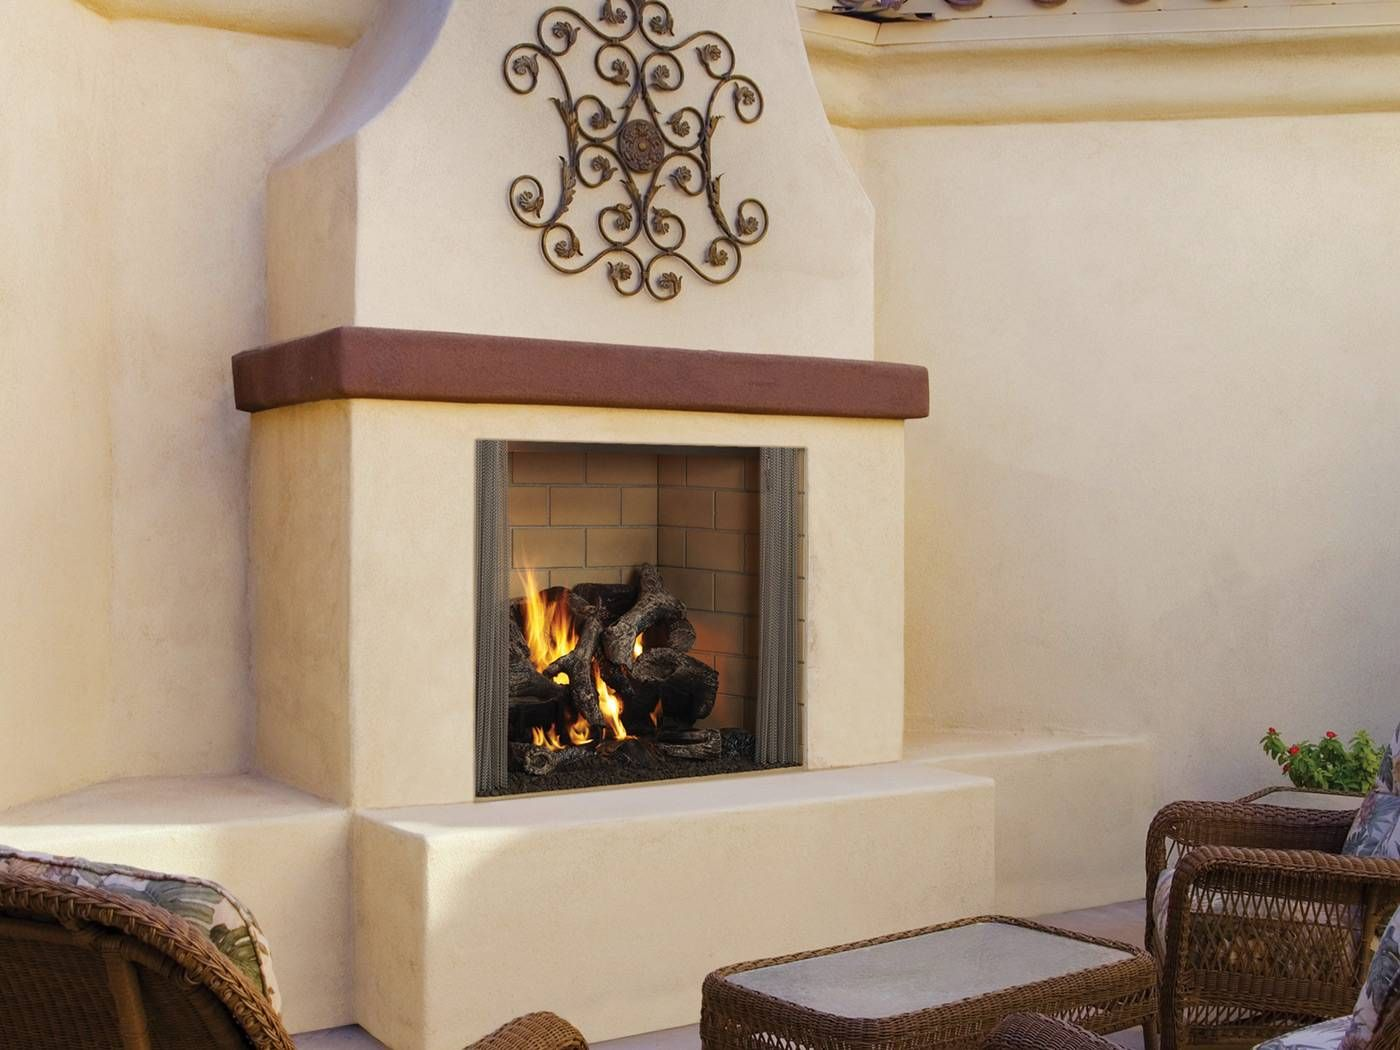 stucco fireplaces. Outdoor Fireplace Stucco Surround With Wood Mantel  Fireplace